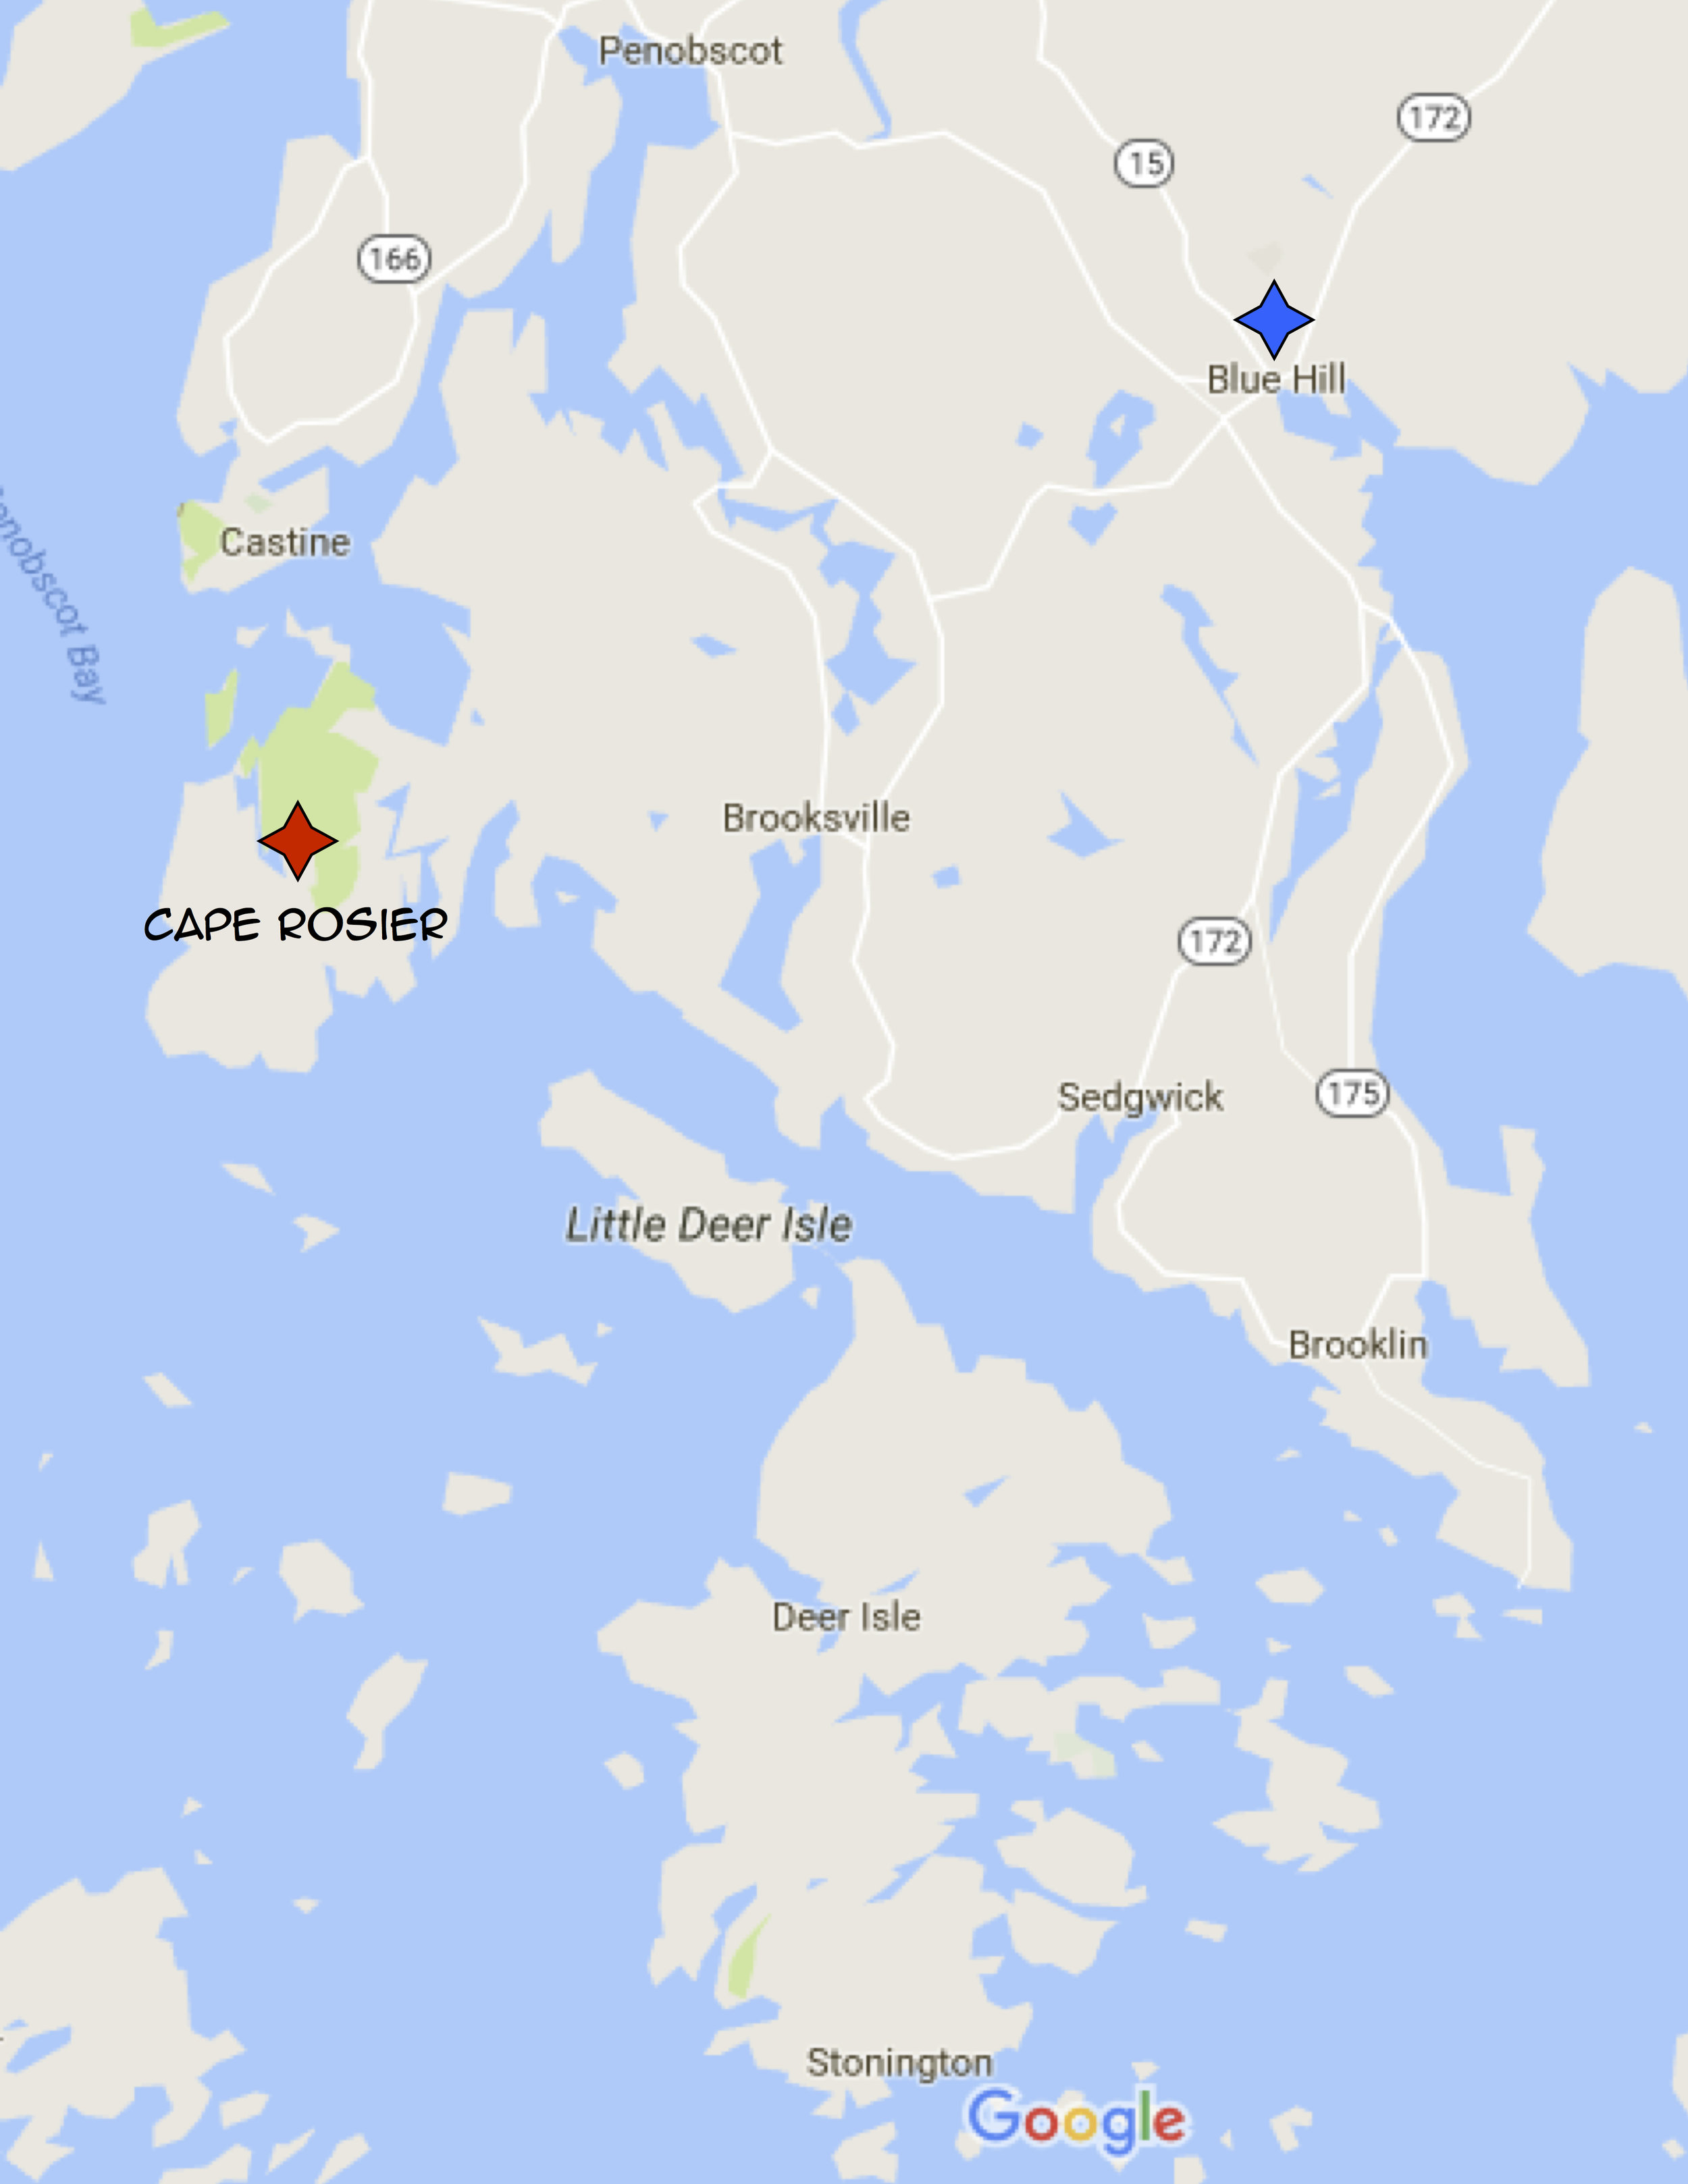 Sargentville is technically part of Sedgwick, and therefore isn't on google. You also can't quite tell, but to get from my house to Penobscot, Brooklin, Deer Isle, and Blue Hill you drive through Sedgwick, it's a really weirdly shaped town.